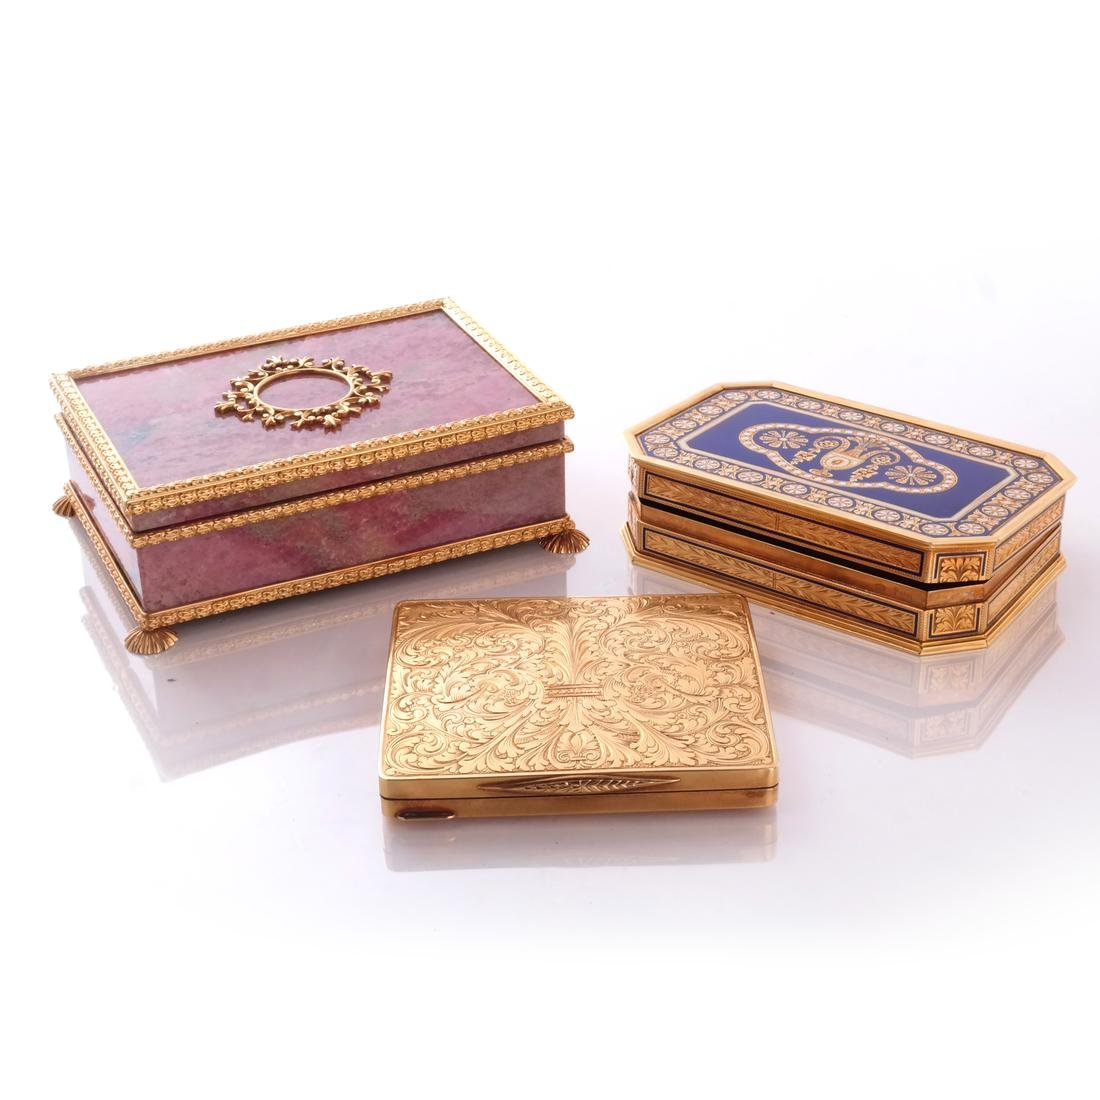 Three Gold Boxes, Modern